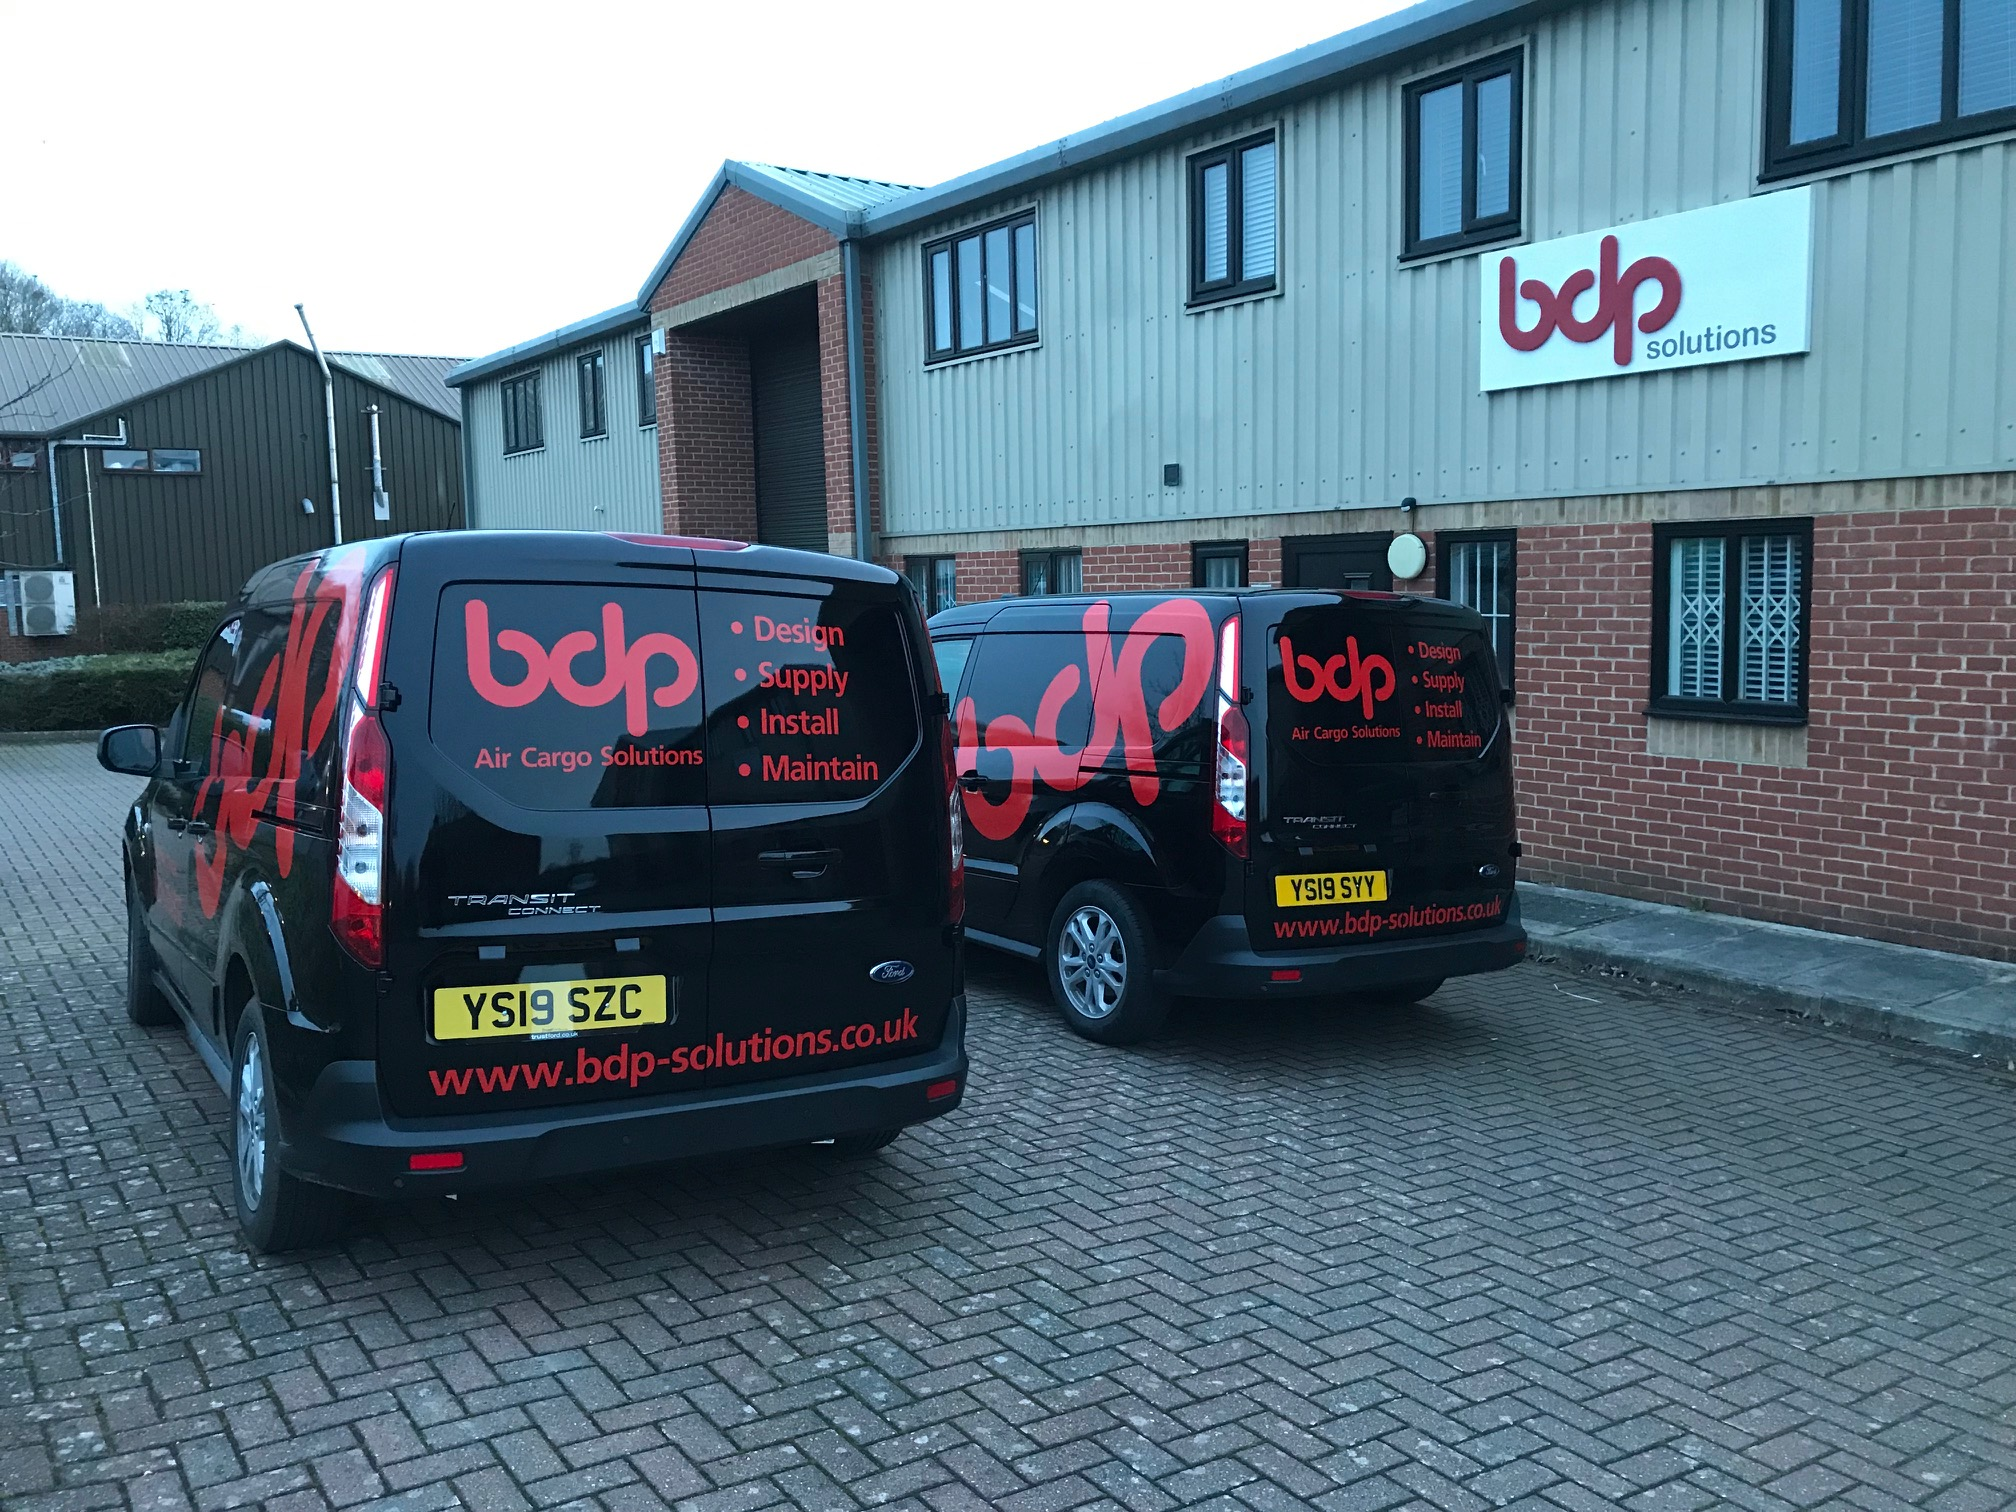 BDP maintenance and engineering